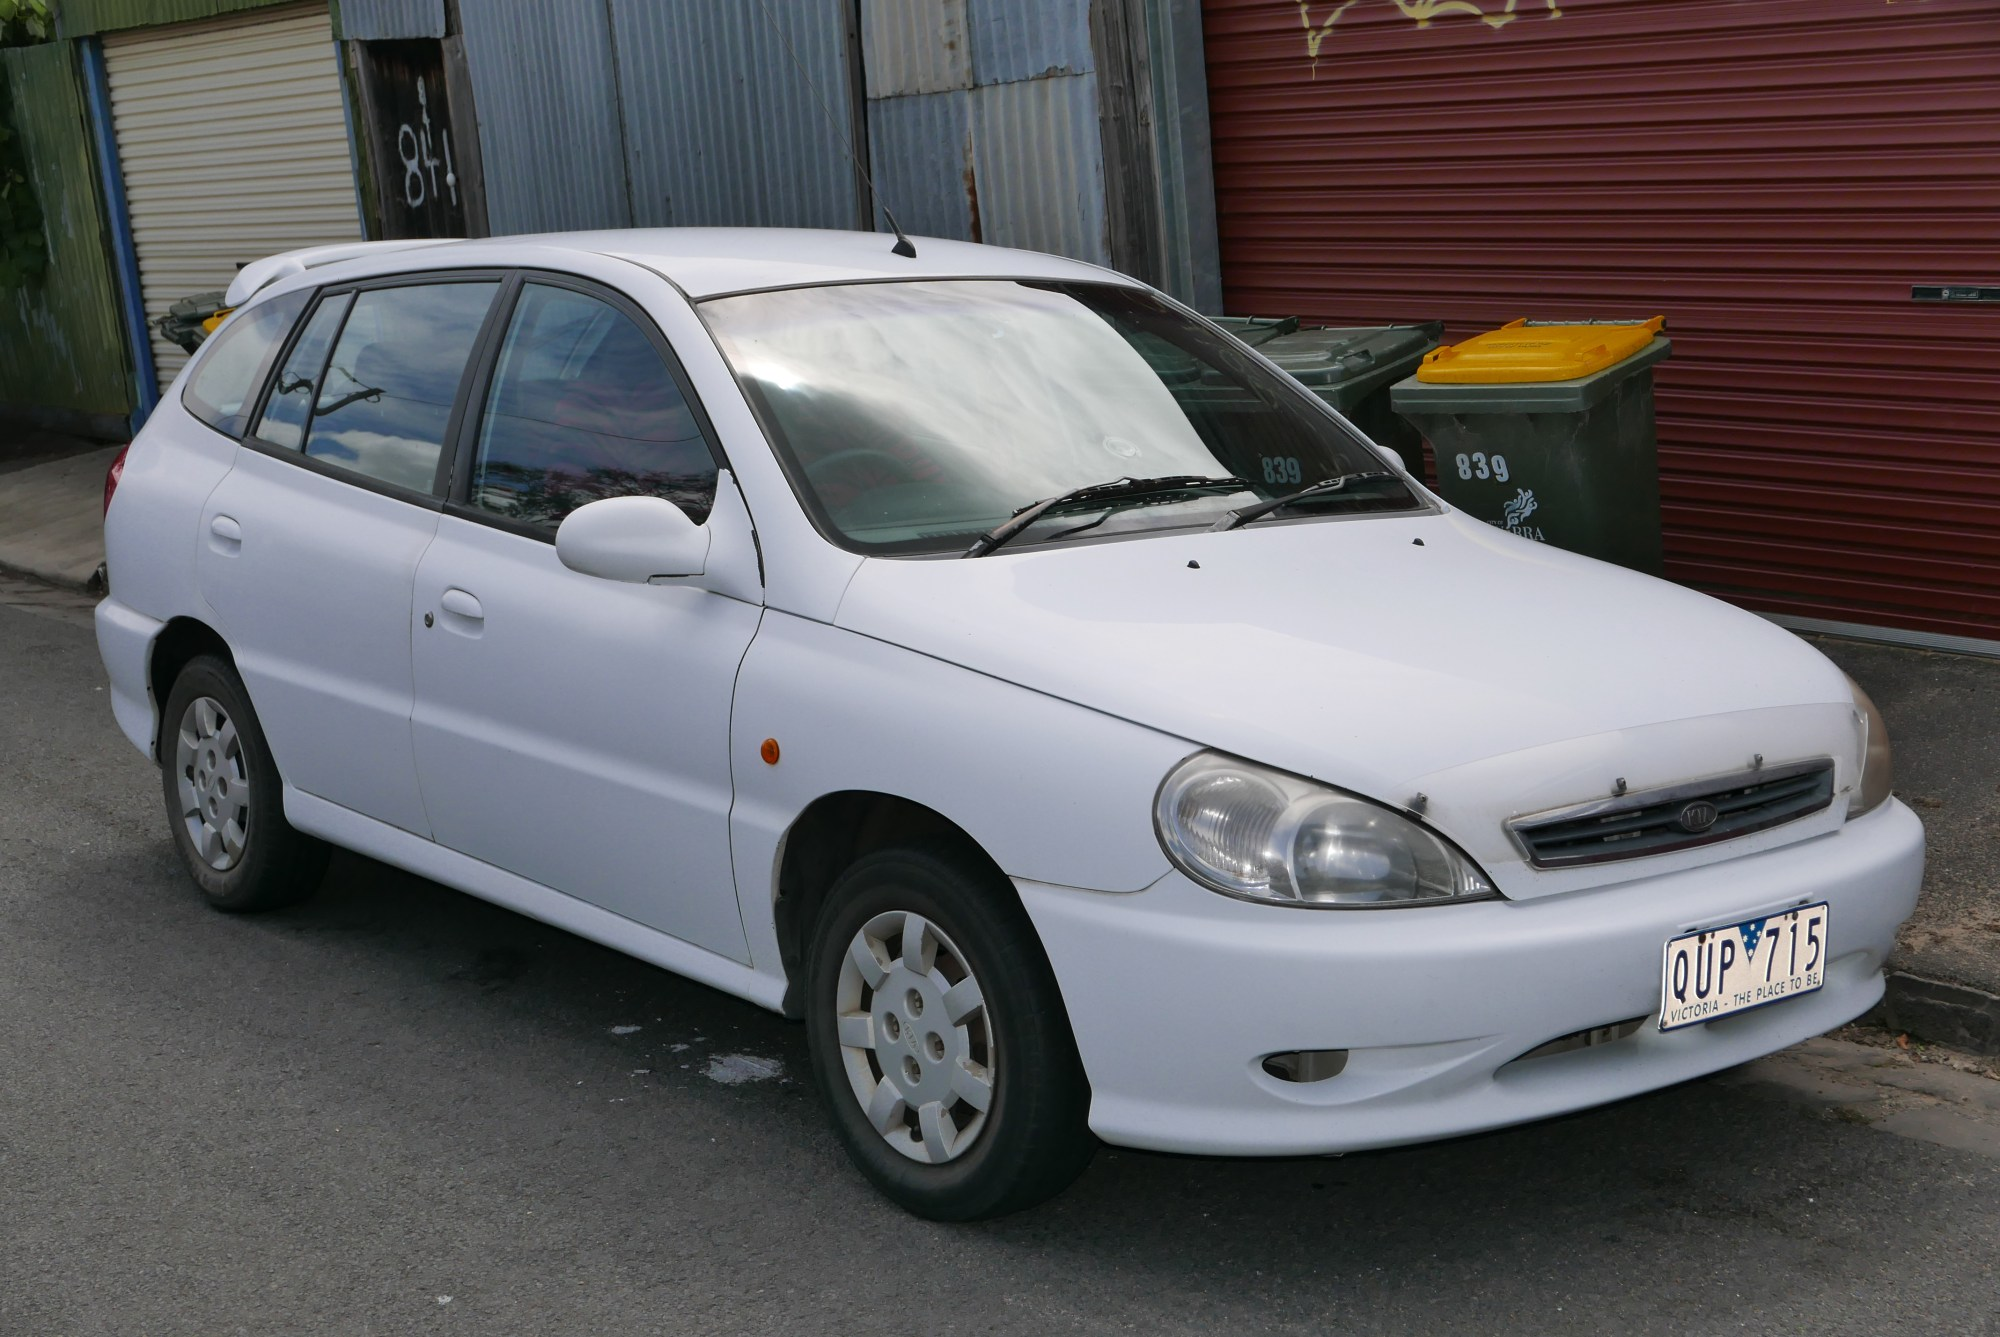 hight resolution of 2001 kia rio dc ls hatchback 2015 11 13 01